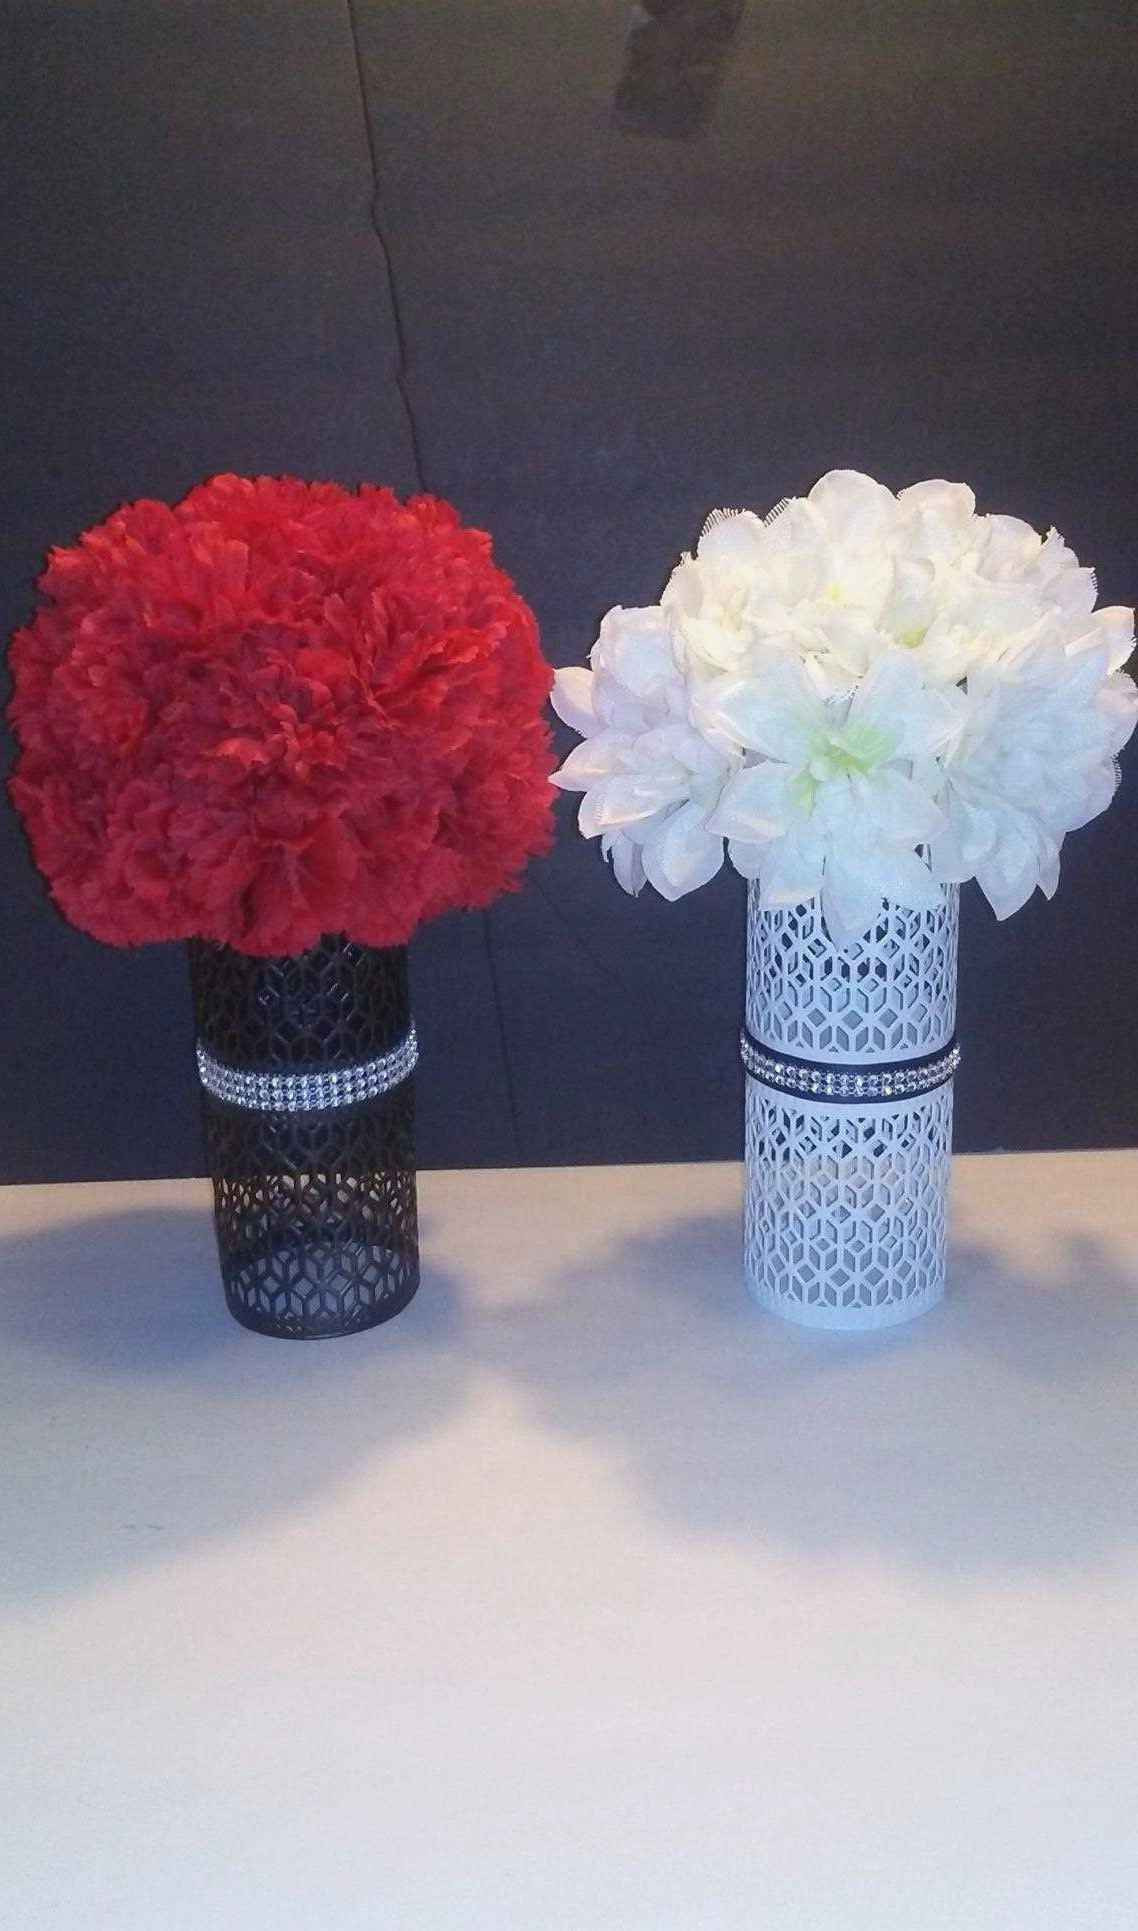 29 Popular Plastic Silver Vases 2021 free download plastic silver vases of fall flowers for wedding beautiful dollar tree wedding decorations intended for fall flowers for wedding beautiful dollar tree wedding decorations awesome h vases dol